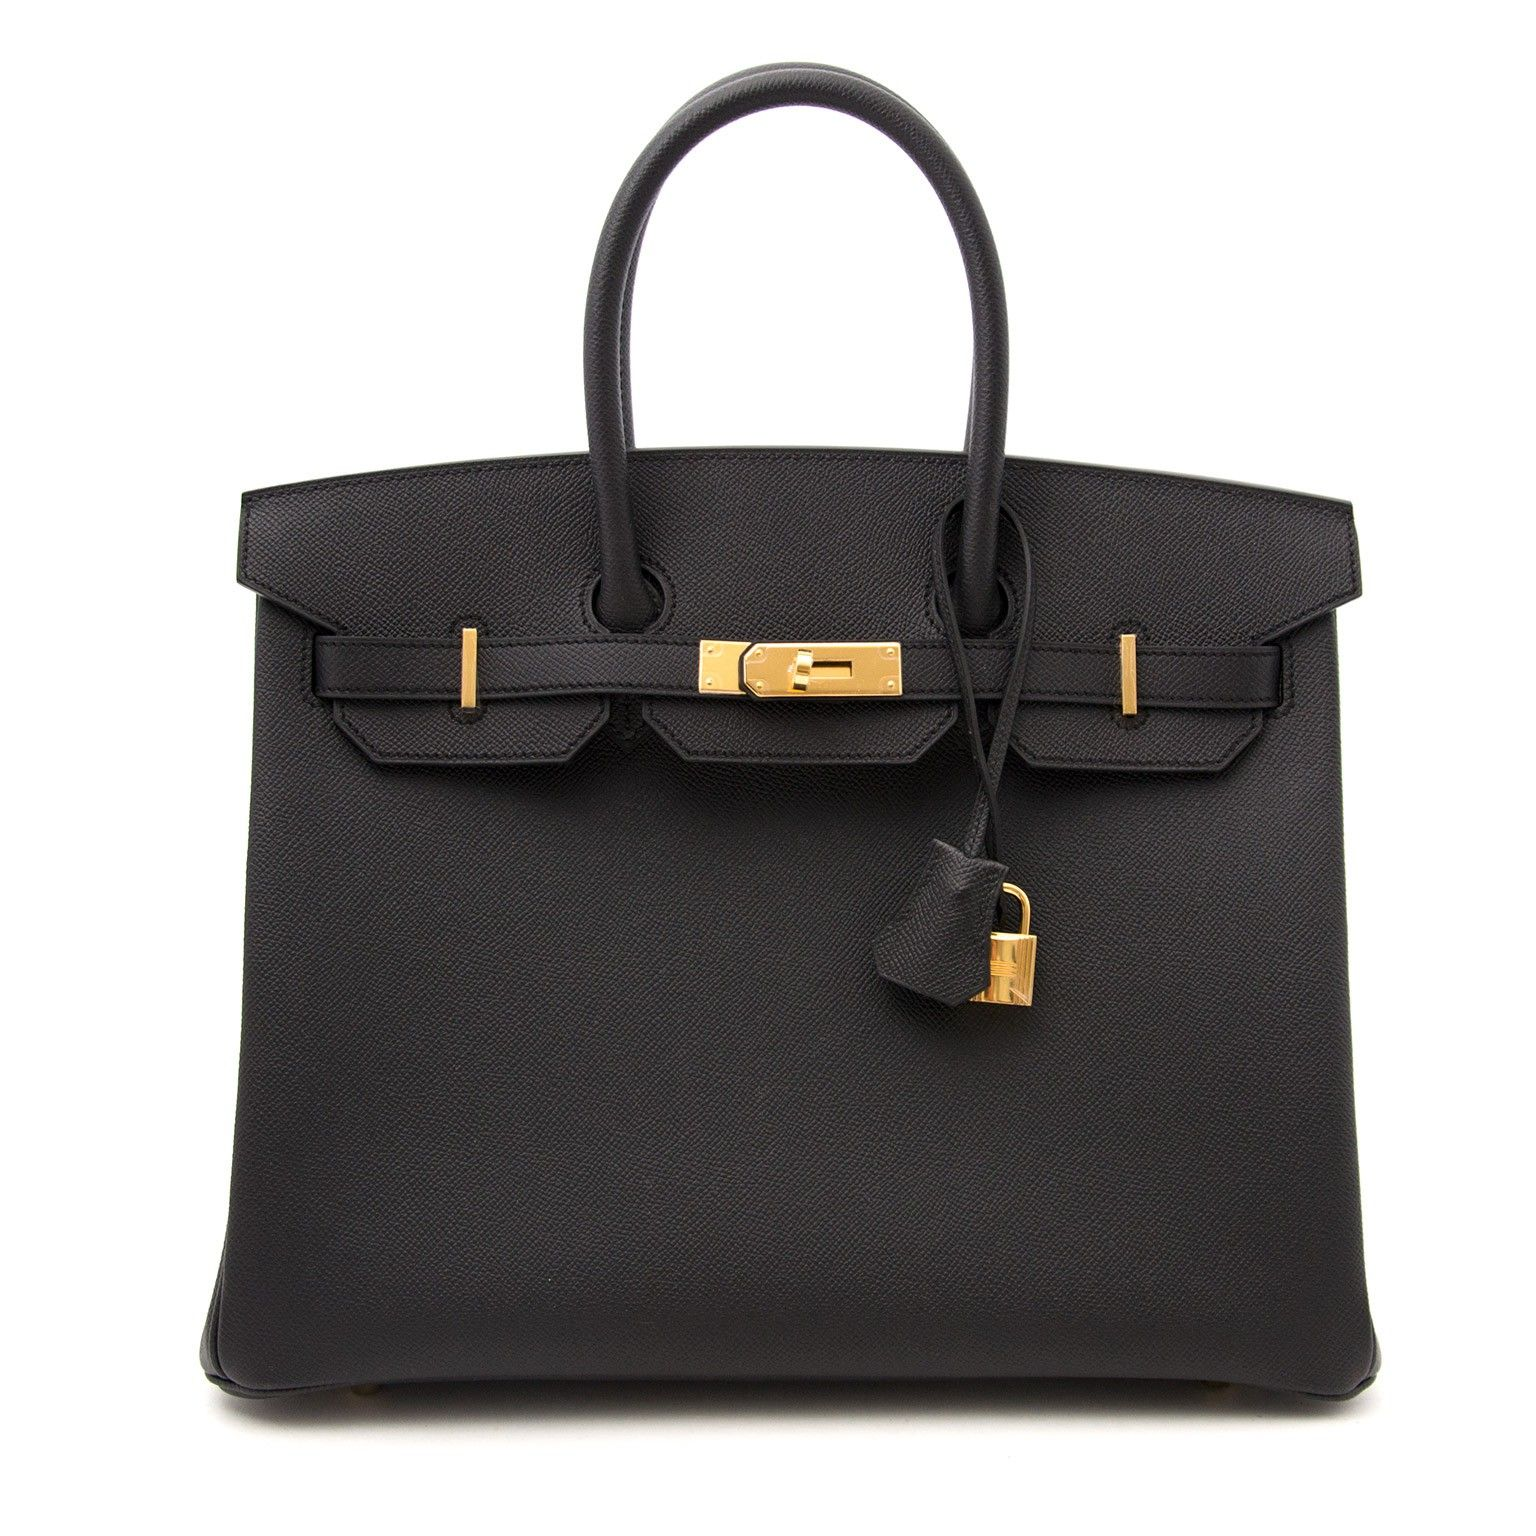 3366e9a6ed0 Labellov Brand New Hermès Birkin 35 Epsom Black GHW ○ Buy and Sell  Authentic Luxury